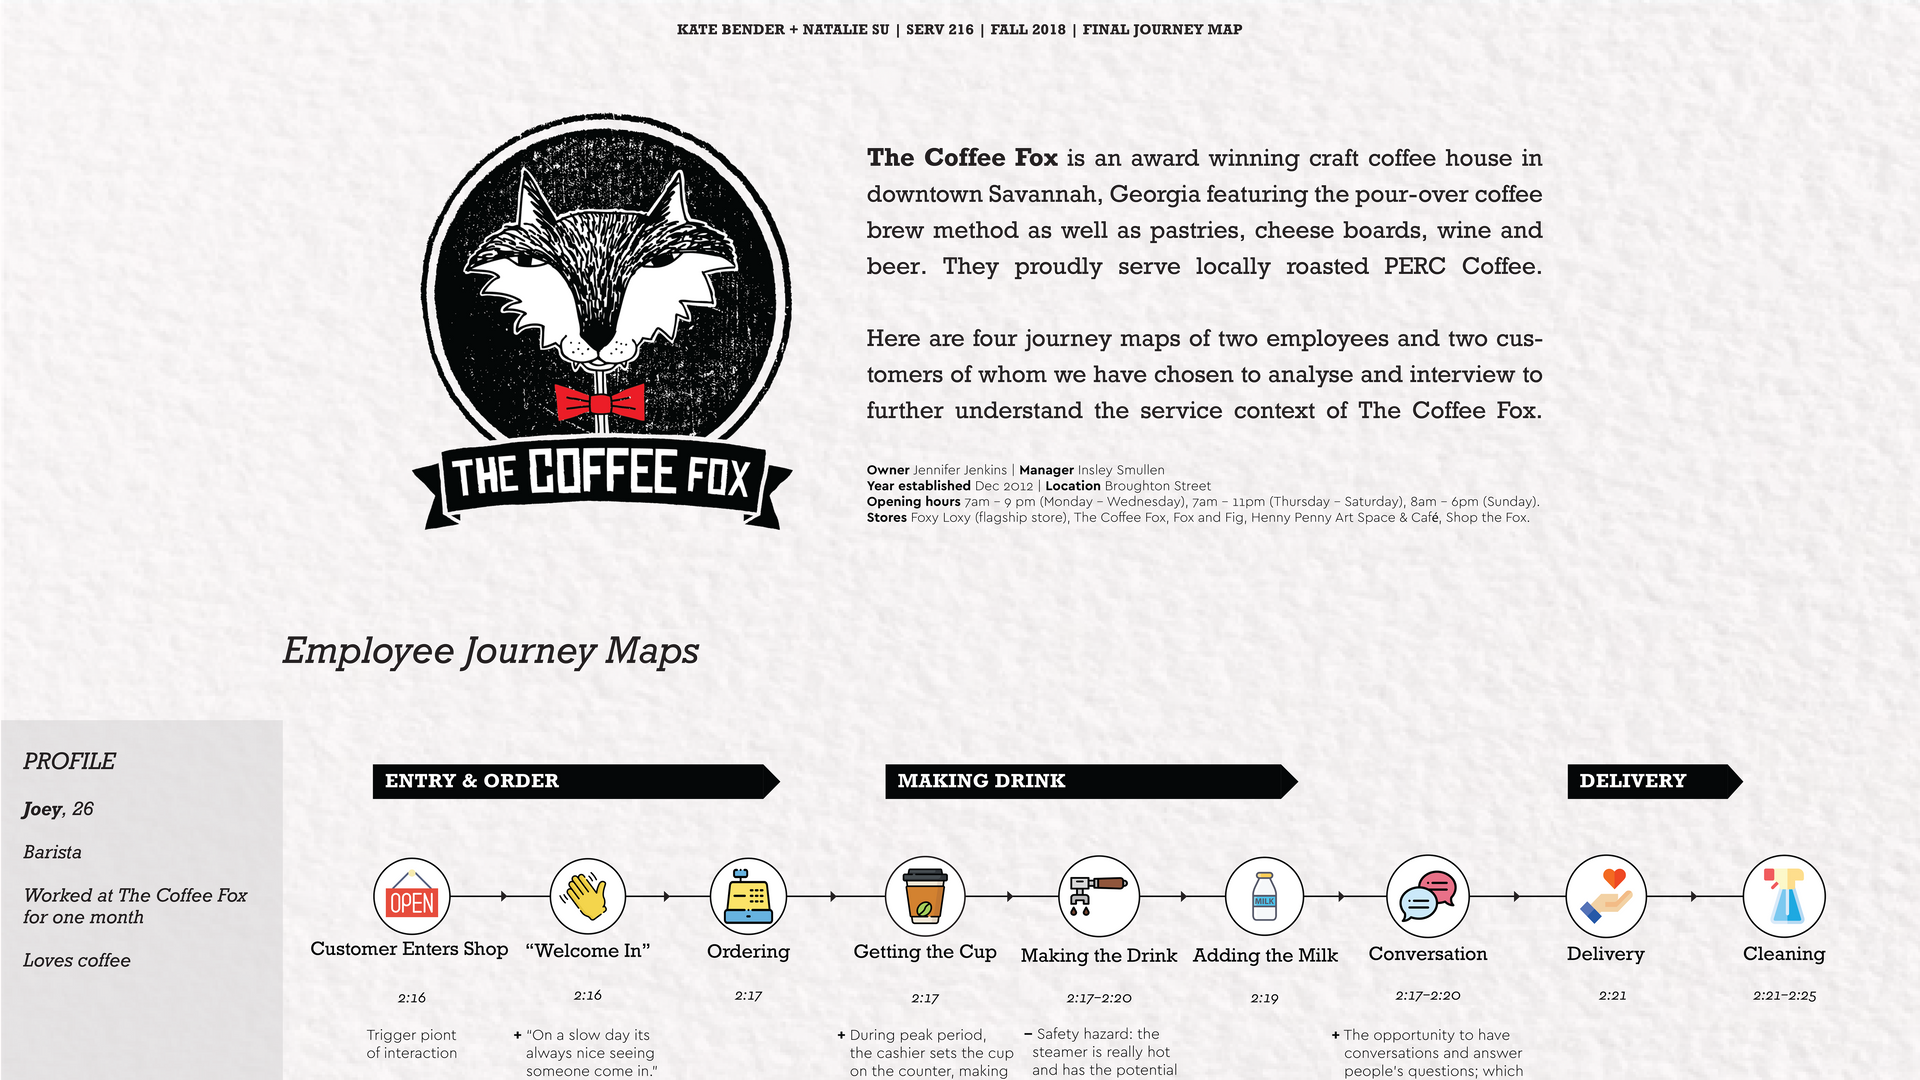 SERV 216 Final Journey Map.png